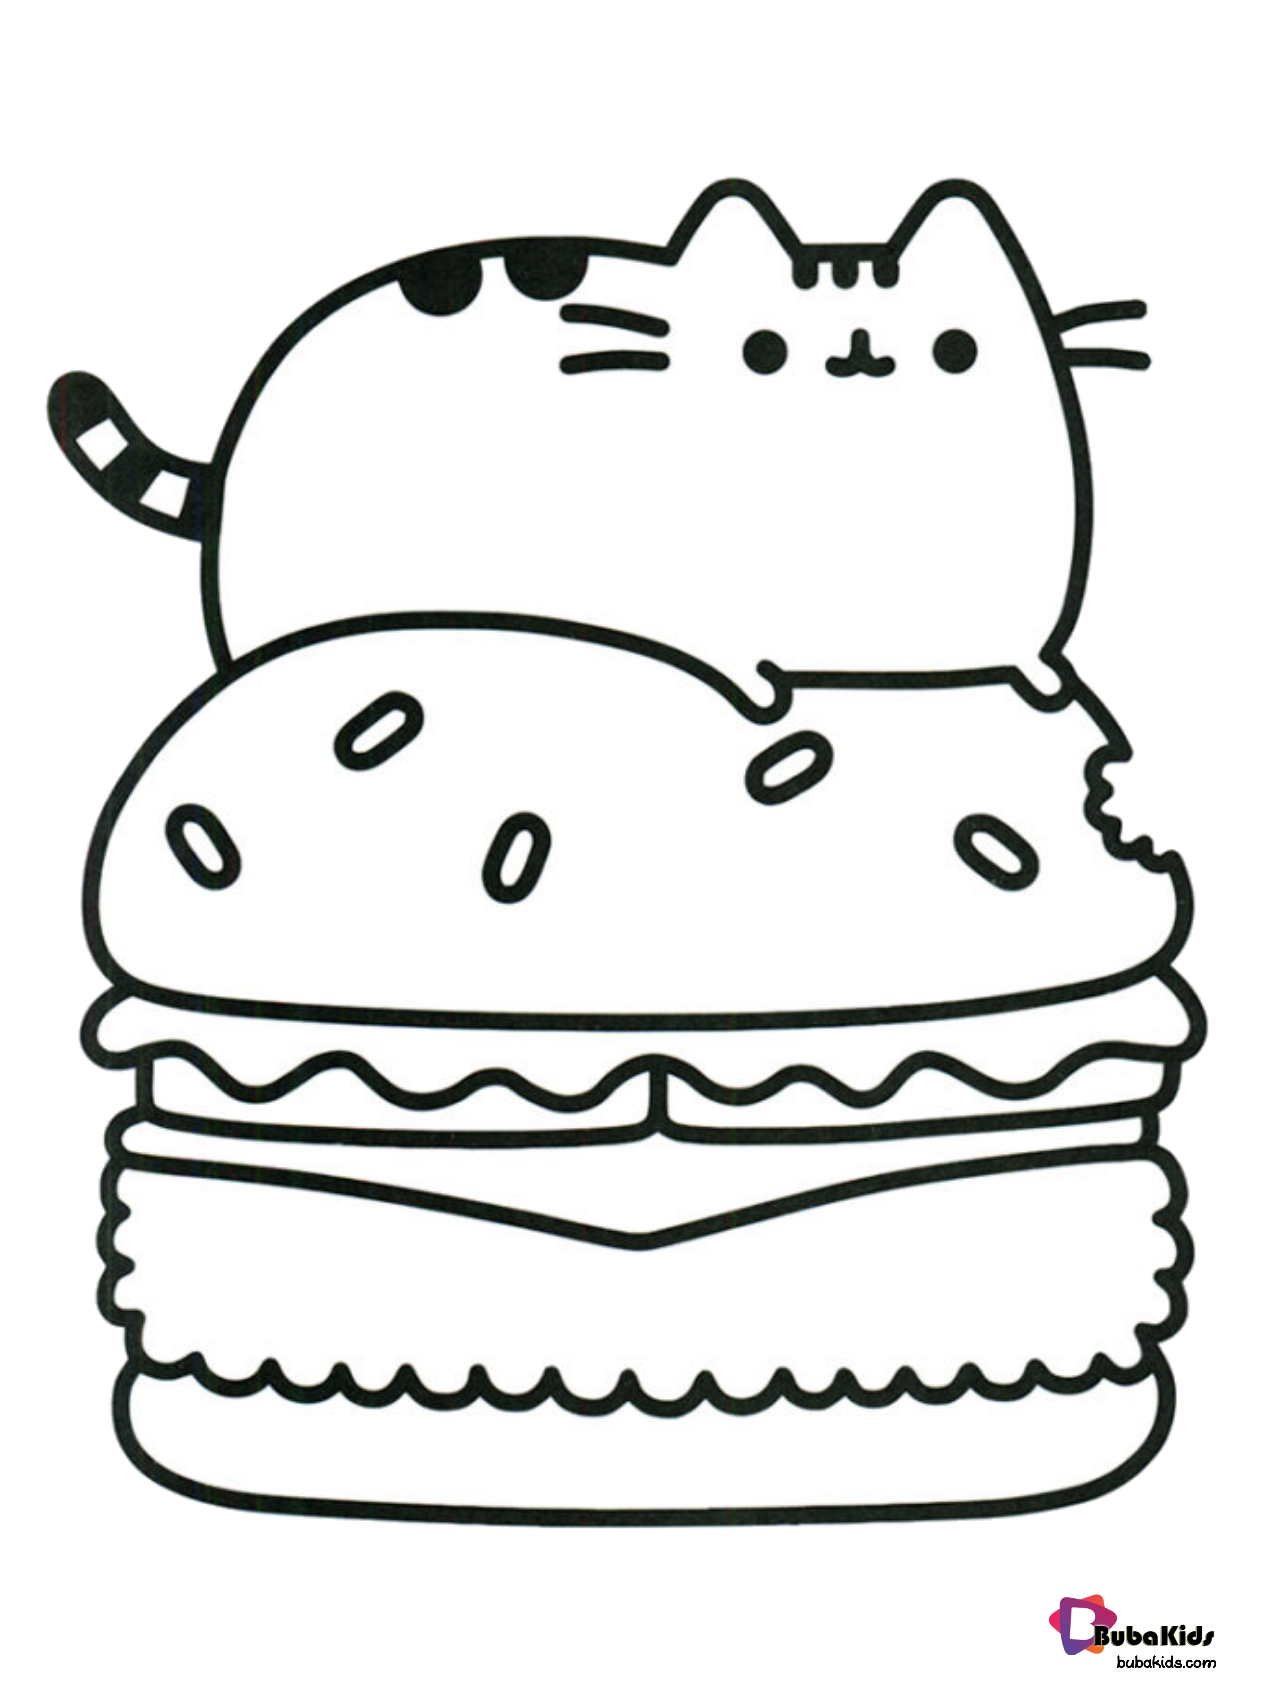 Cute Pusheen Cat Eating Burger Coloring Page Collection Of Cartoon Coloring Pages For Teenage In 2020 Cartoon Coloring Pages Cat Coloring Page Unicorn Coloring Pages